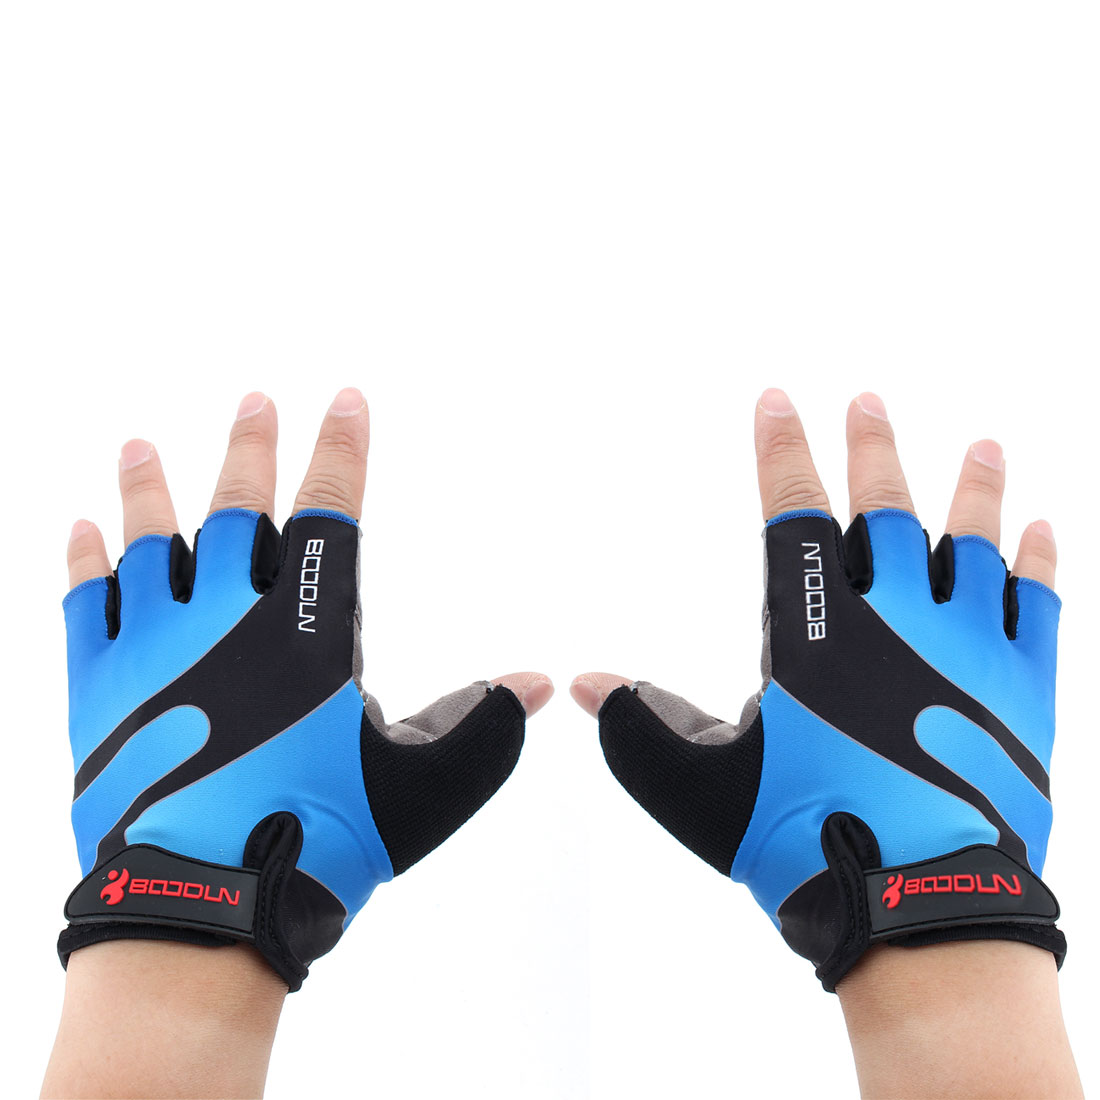 BOODUN Authorized Polyester Exercise Sports Lifting Training Bodybuilding Wrist Protector Half Finger Fitness Gloves Blue XXL Pair